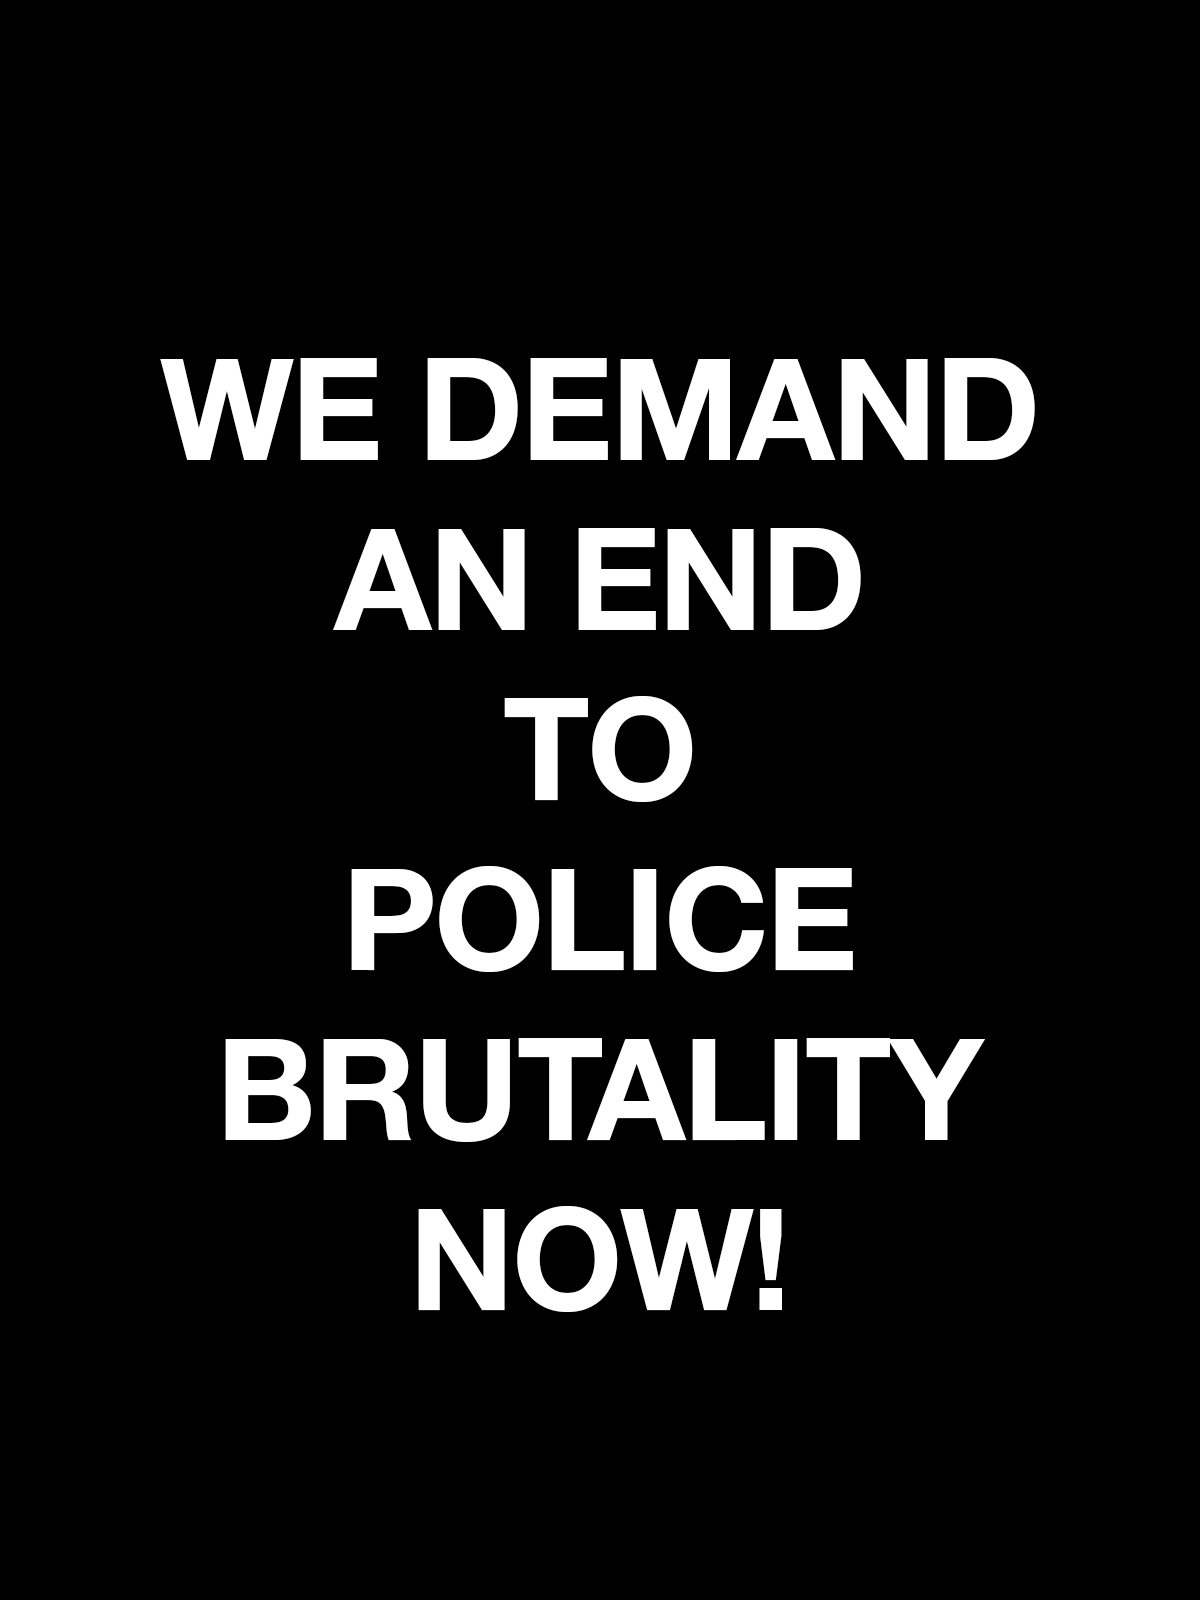 Adeshola Makinde  RELEVANT - WE DEMAND AN END TO POLICE BRUTALITY NOW!,  16 X 20, Silkscreen on Canvas, 2019